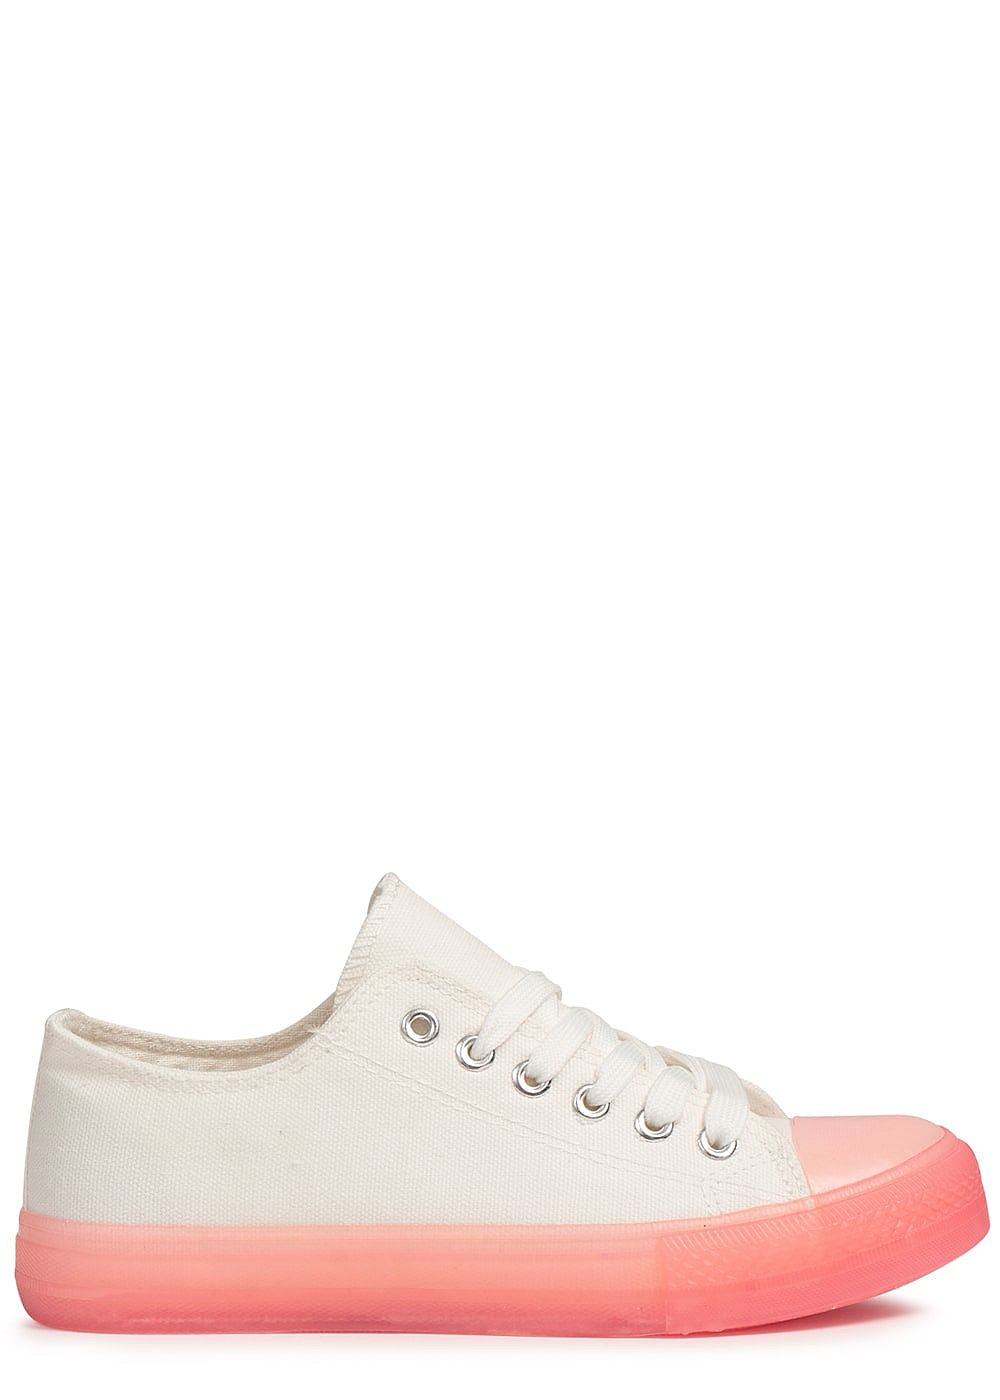 Seventyseven Lifestyle Damen Shoes Canvas-Sneaker pink weiss - Art.-Nr.: 19020646